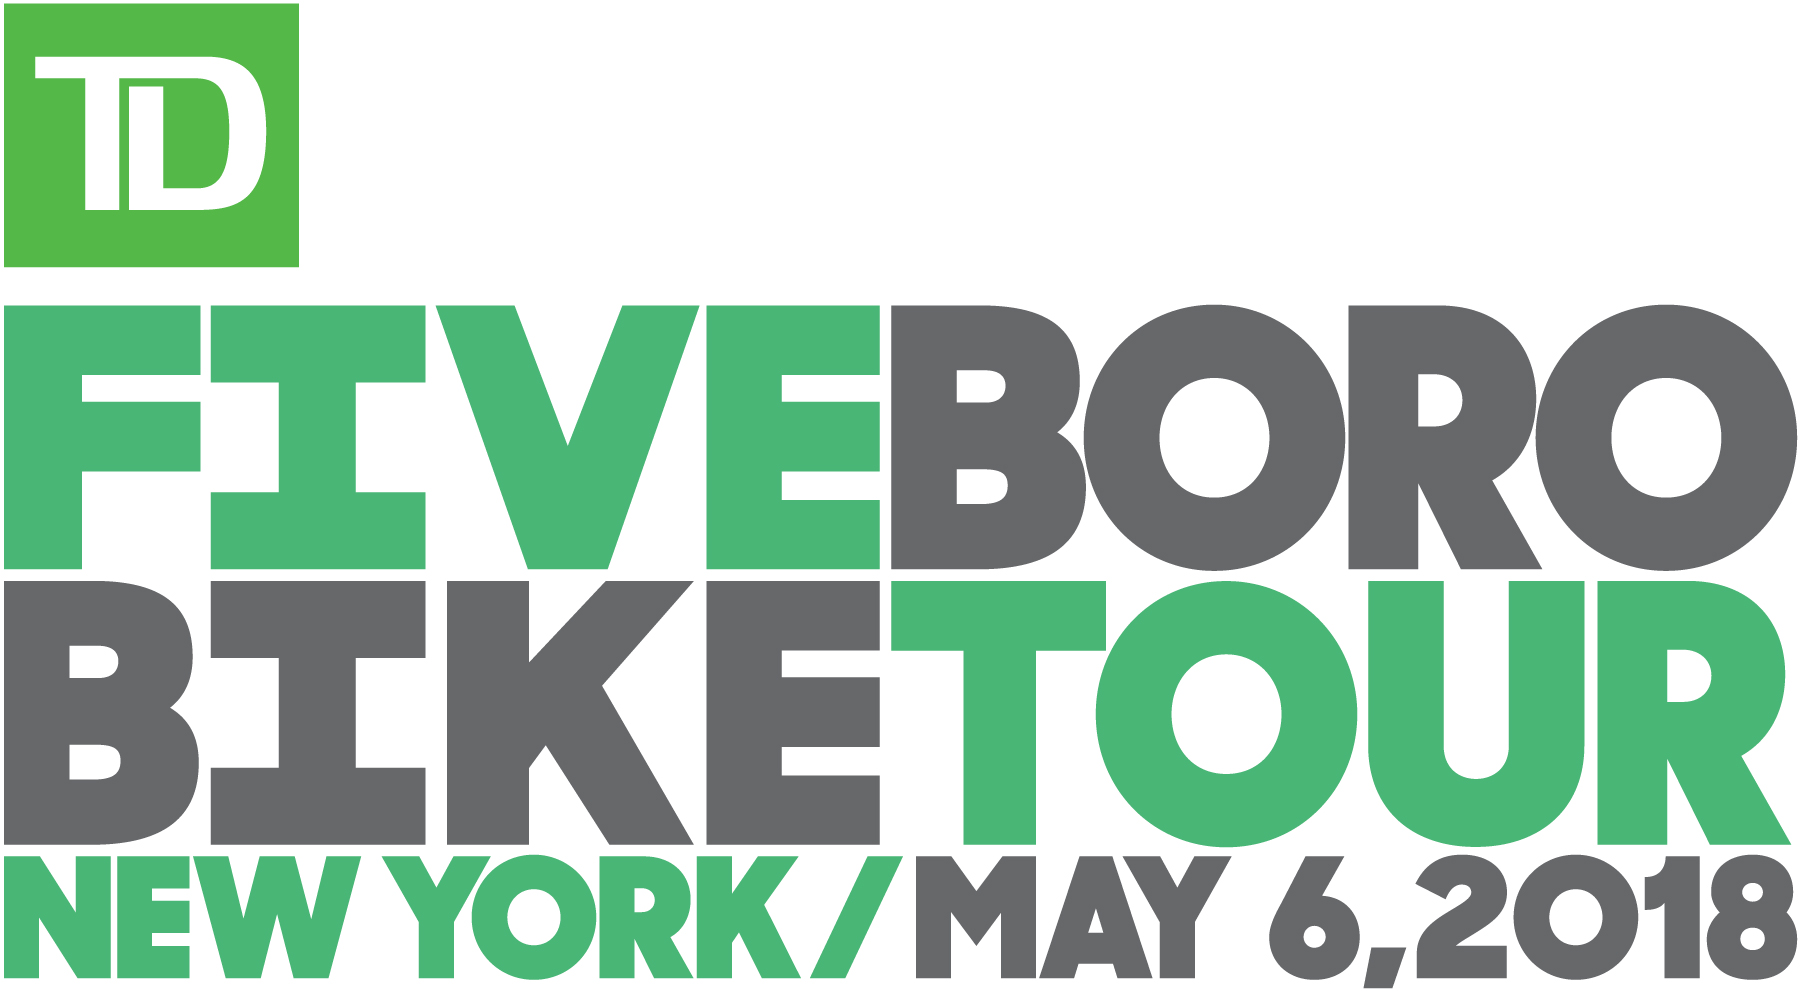 On The First Sunday In May 32000 Cyclists Of All Skill Levels Come From Around The World To Roll Through The Five Boroughs Of New York City On 40 Miles